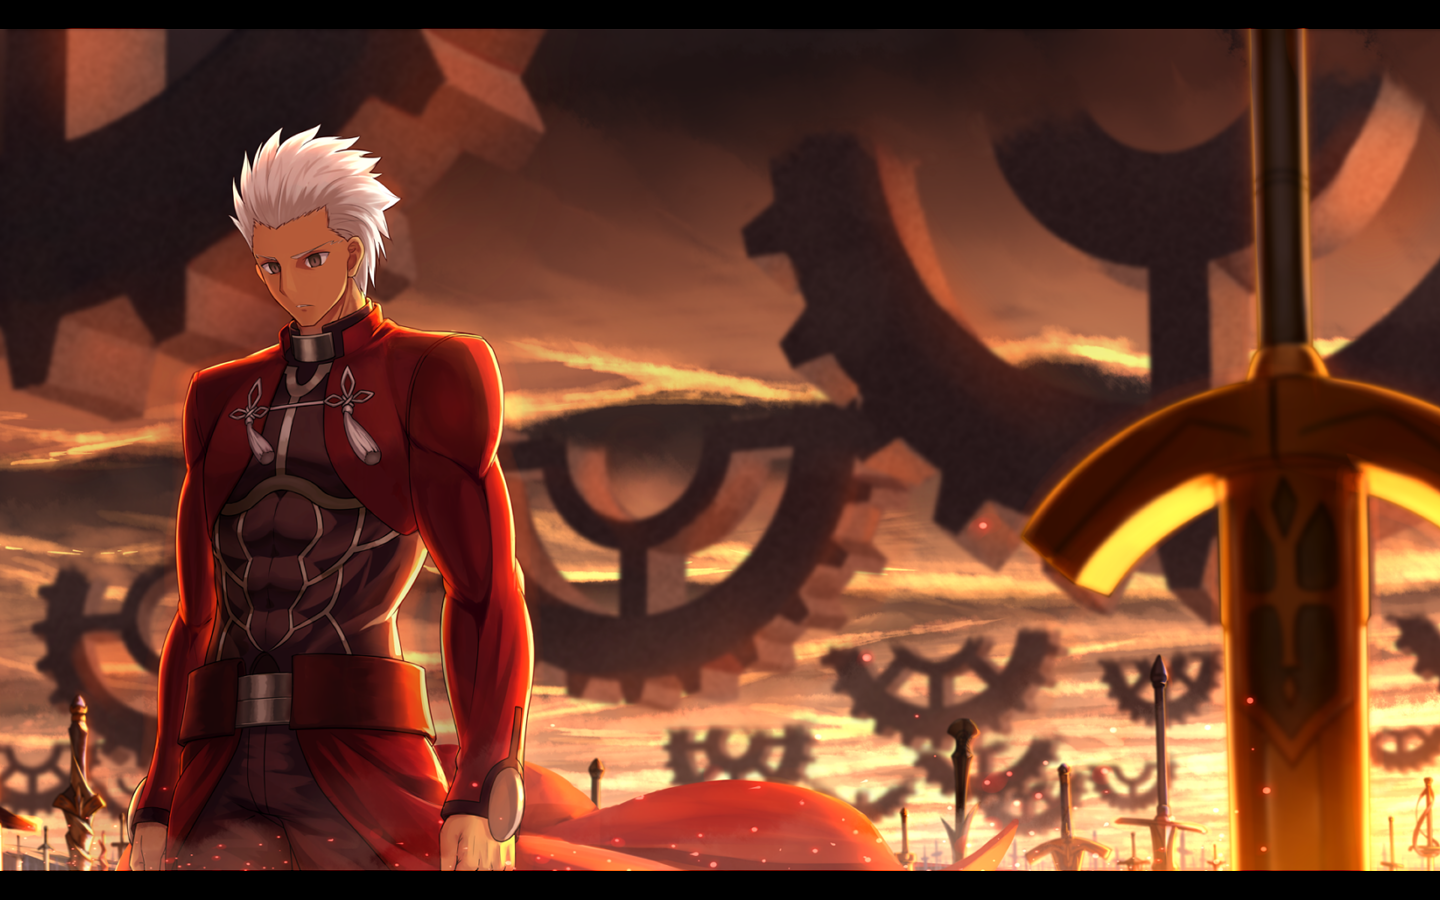 Free Download Archer Fate Stay Night Fate Series Fate Stay Night